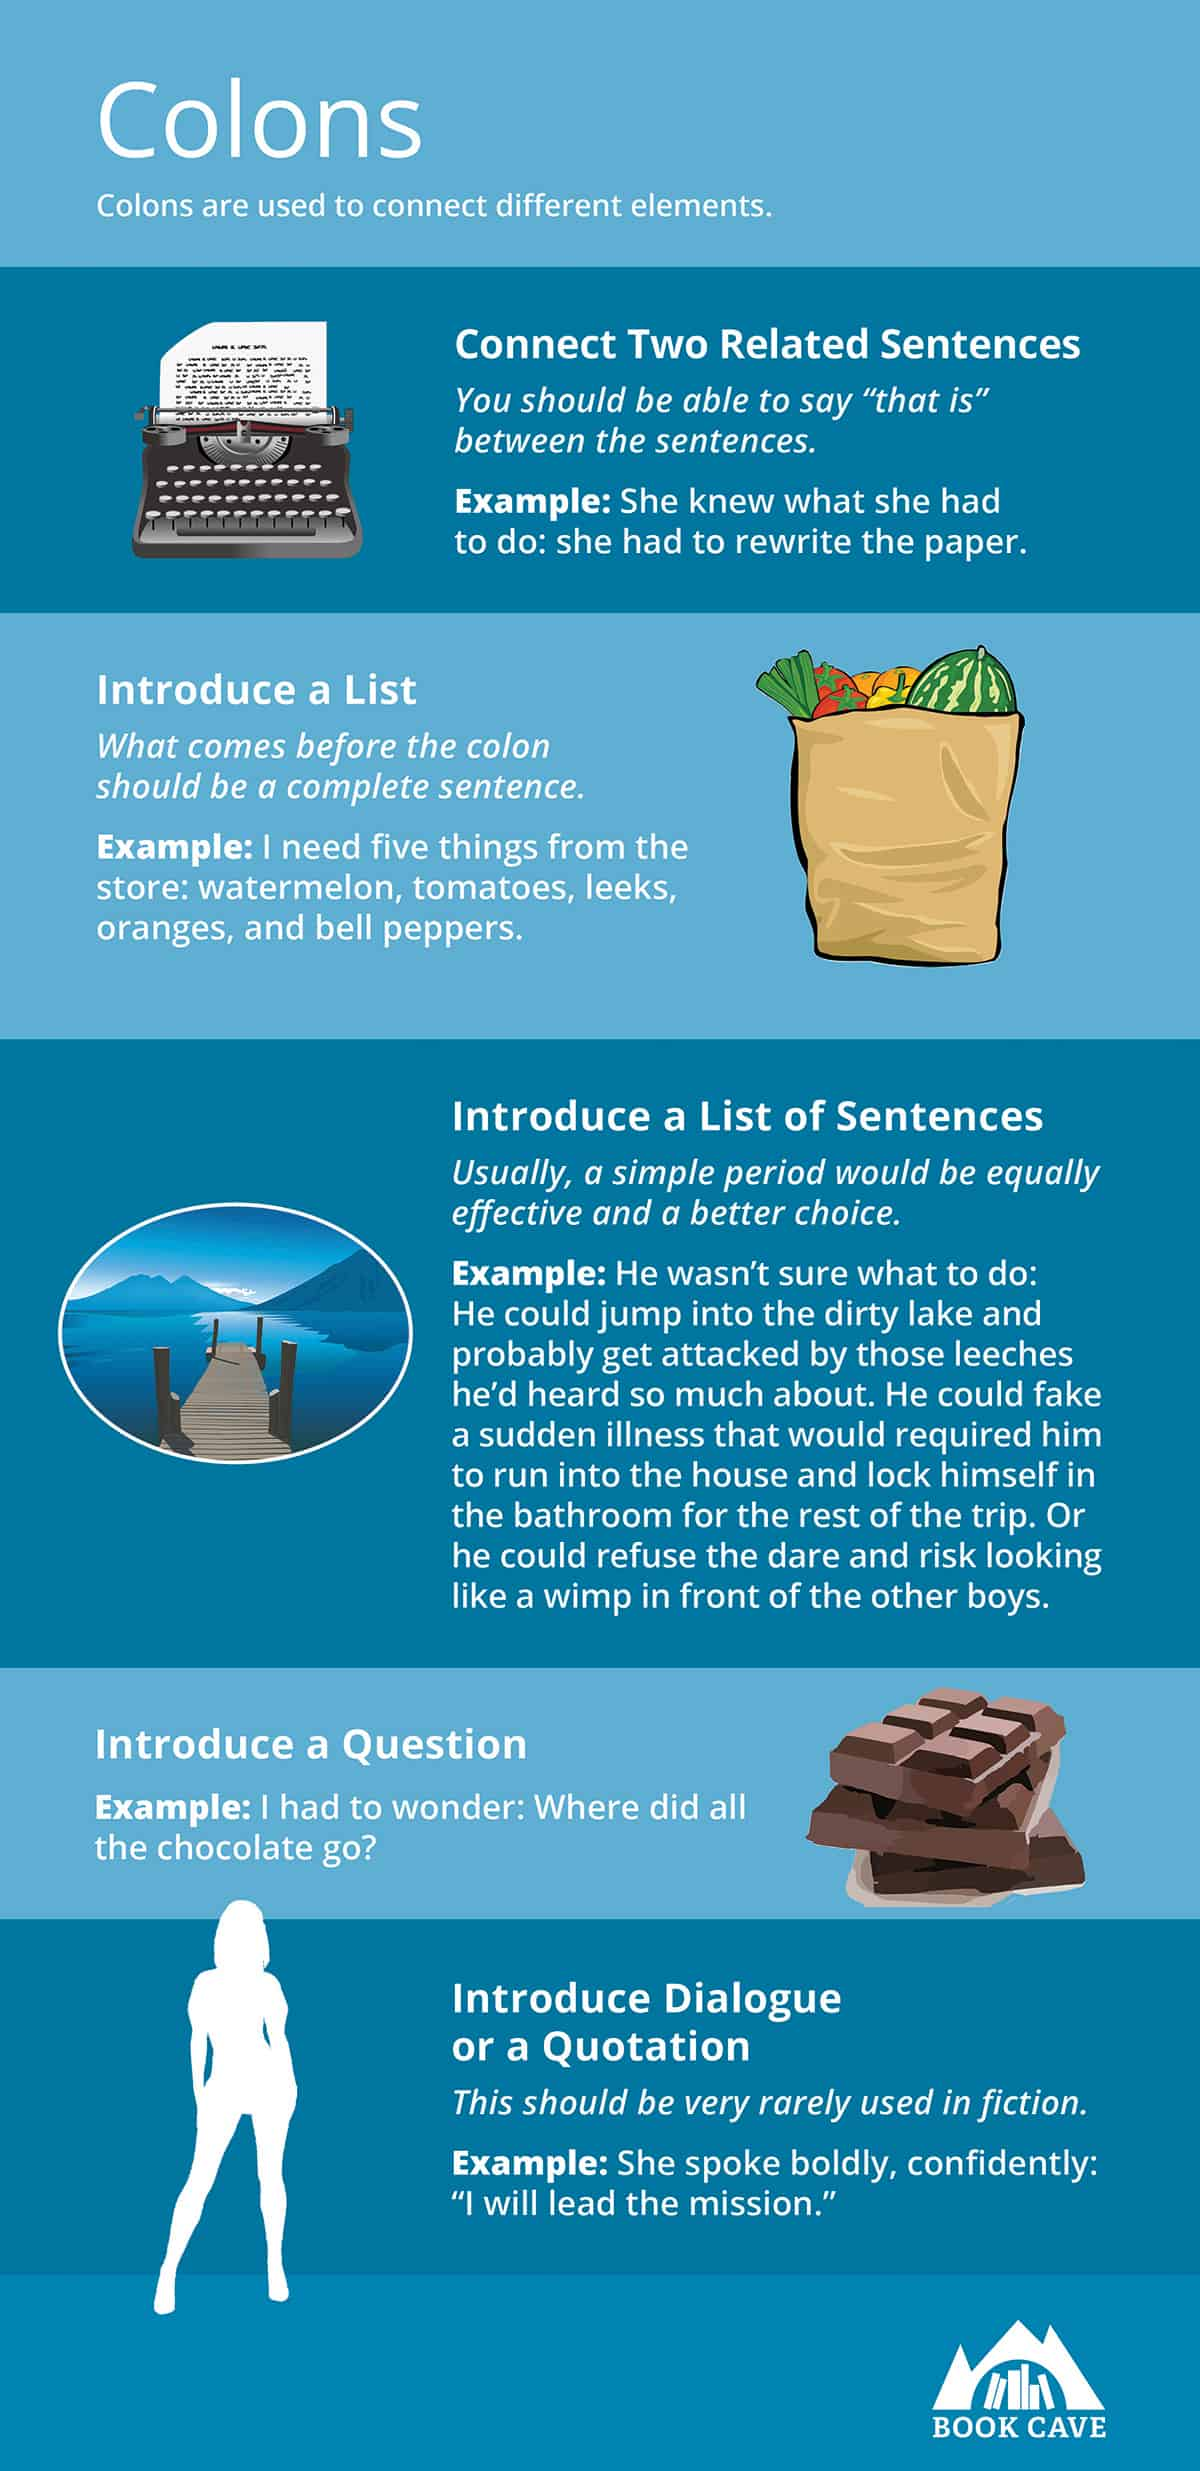 infographic on colons